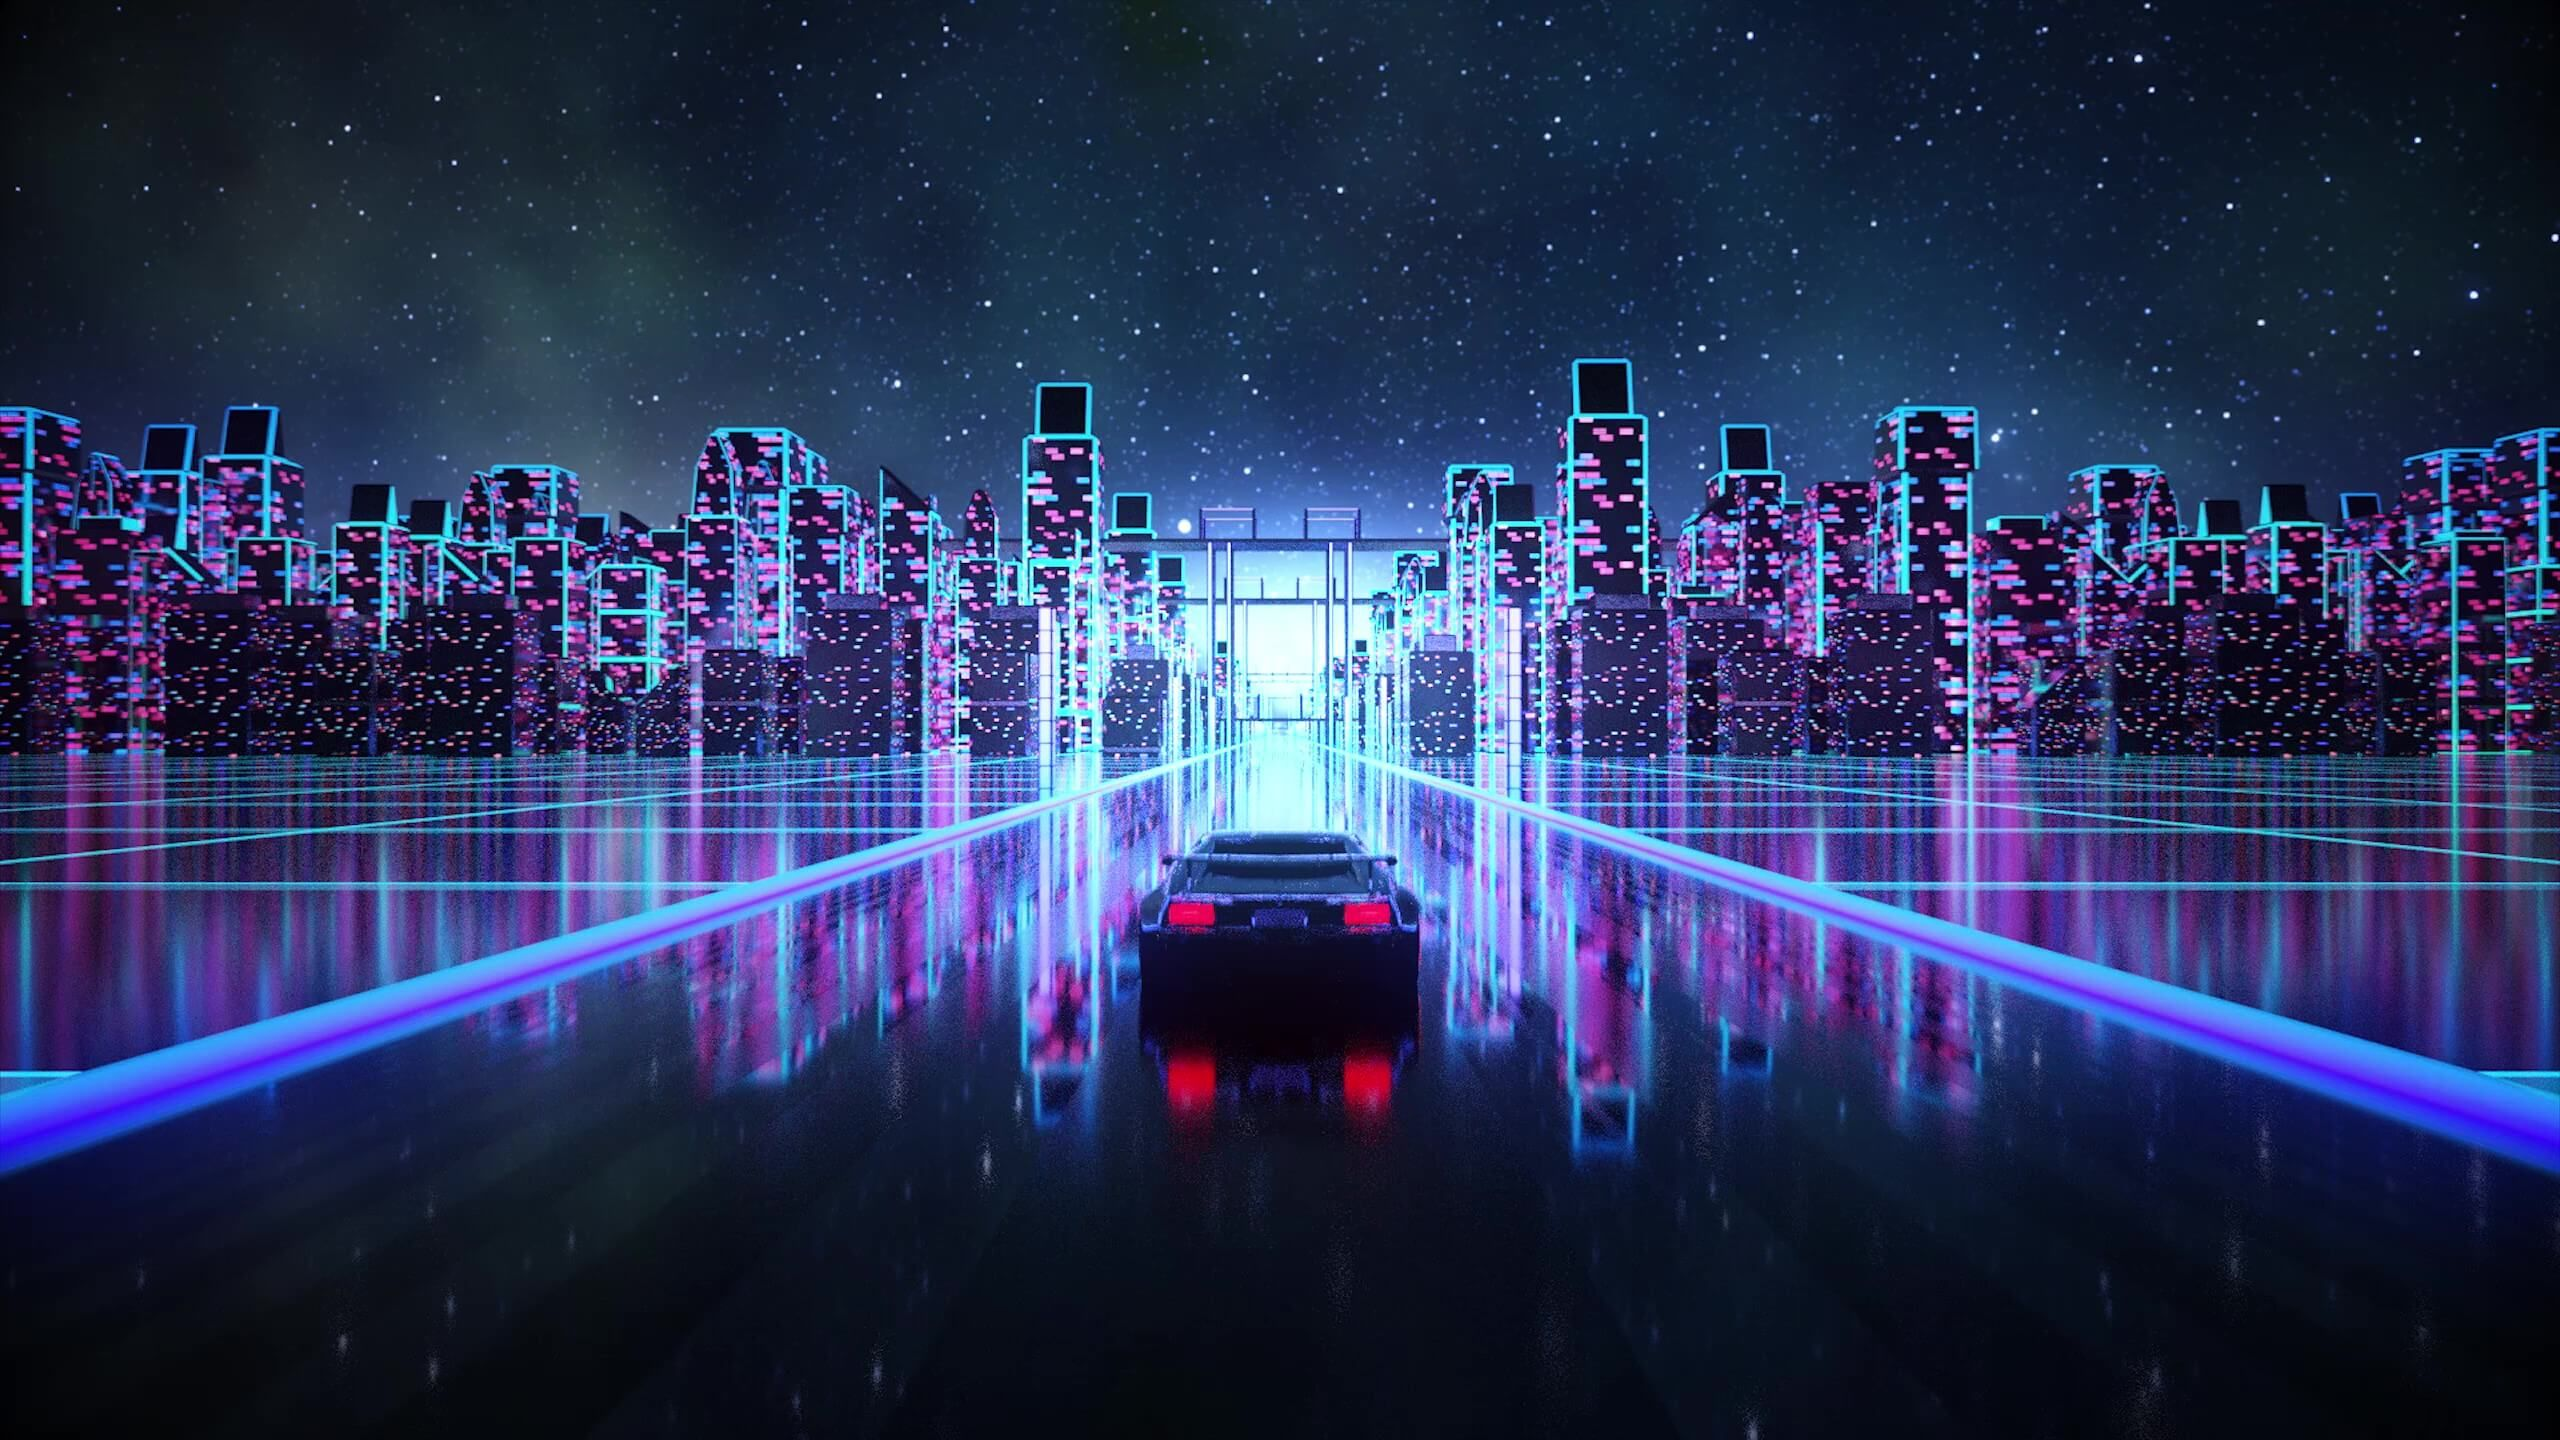 Outrun Trailblazing Car Live Live Wallpapers Anime Wallpaper Wallpaper Pc